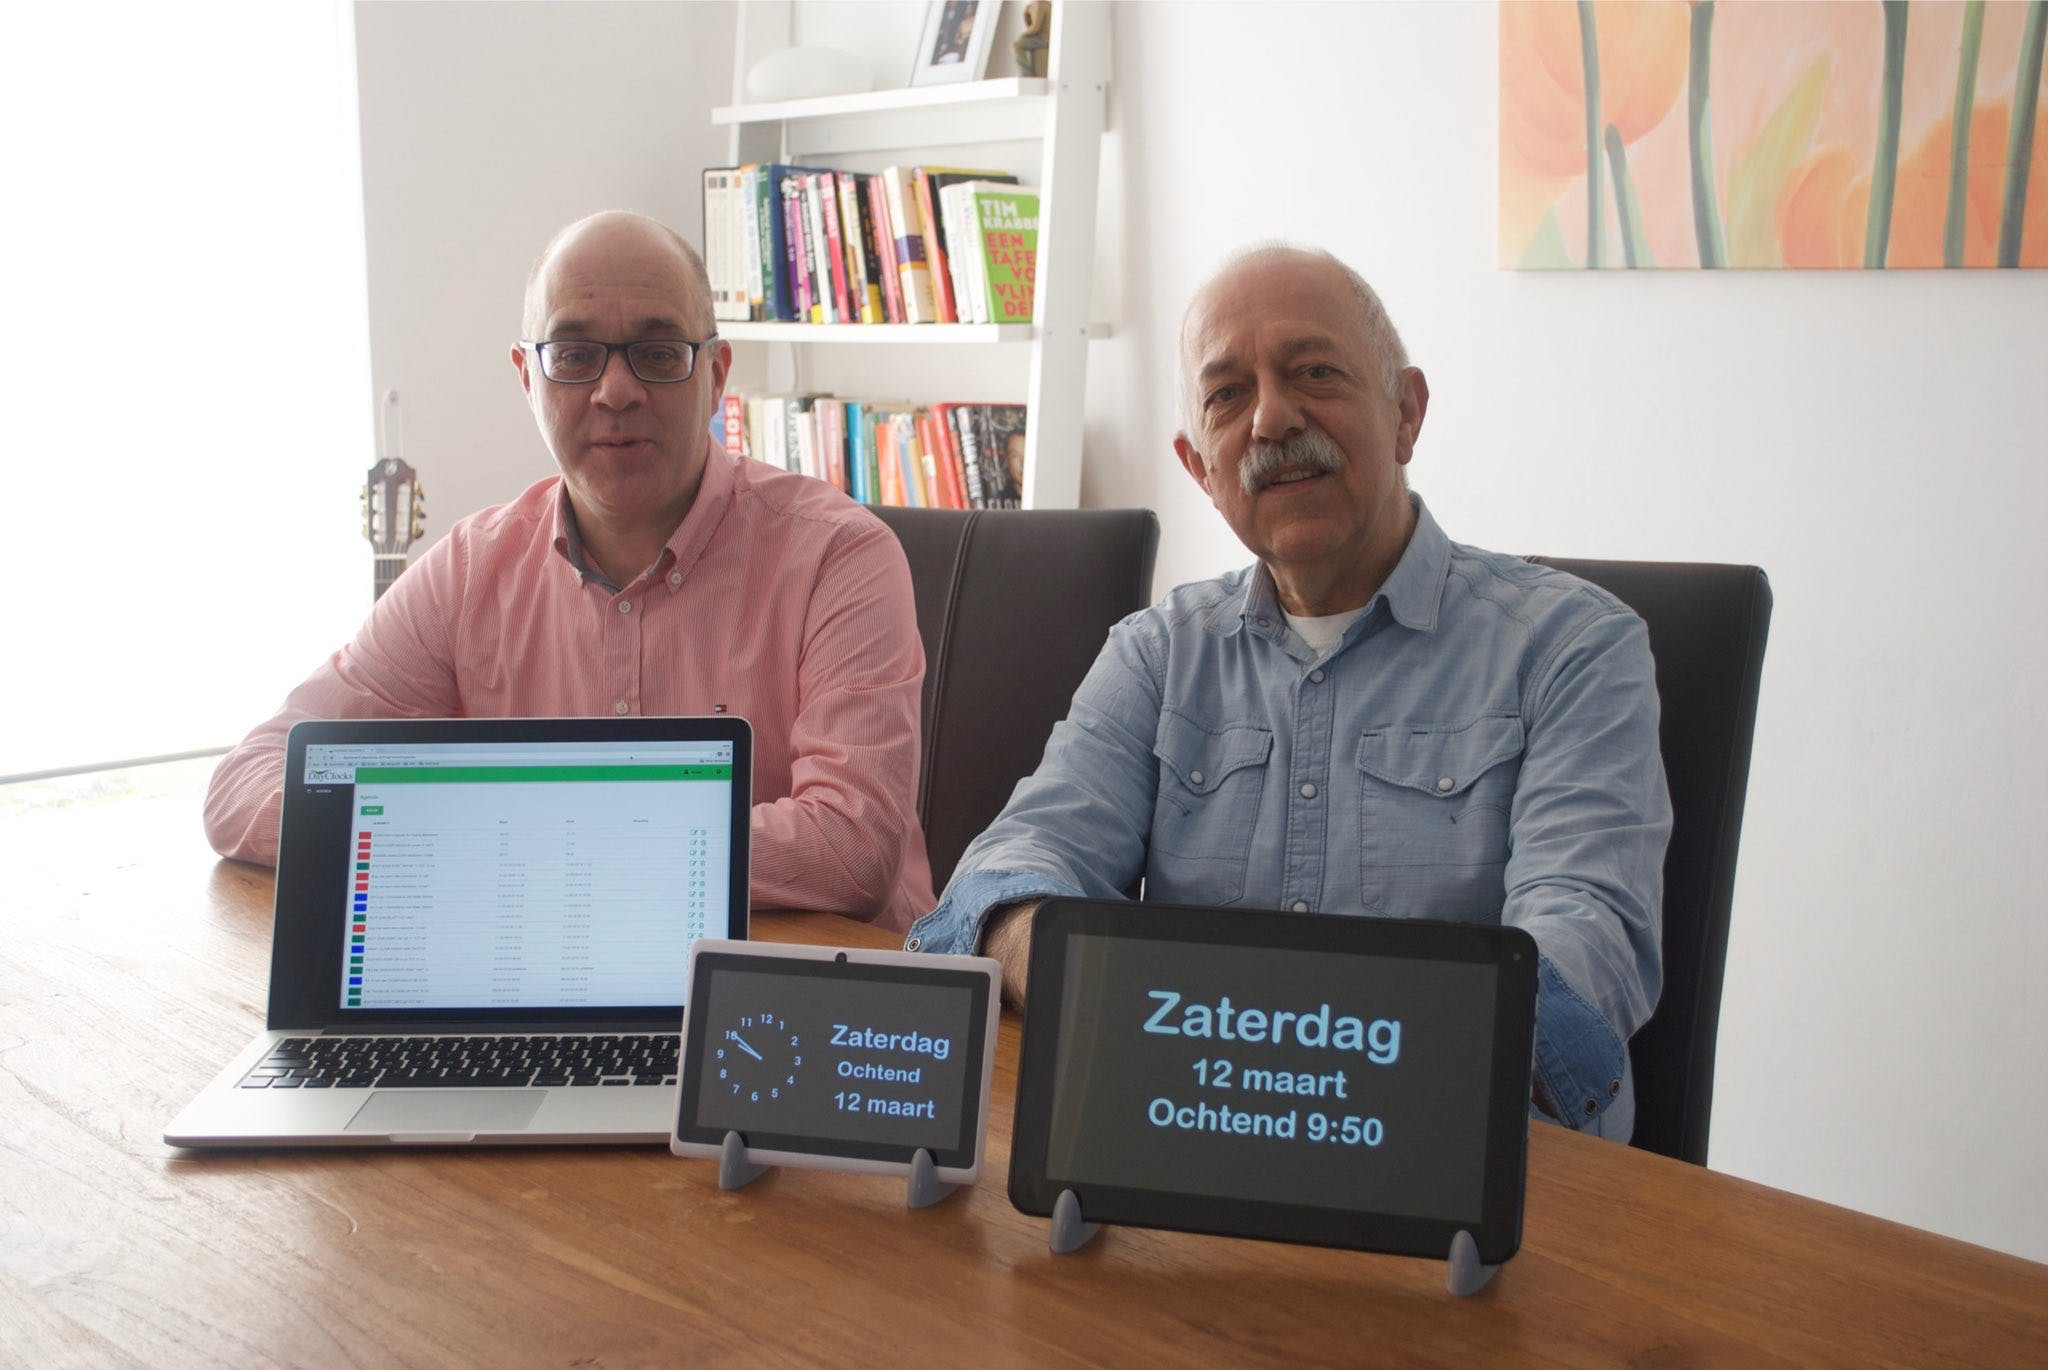 Dayclocks founders Henk and Marcel